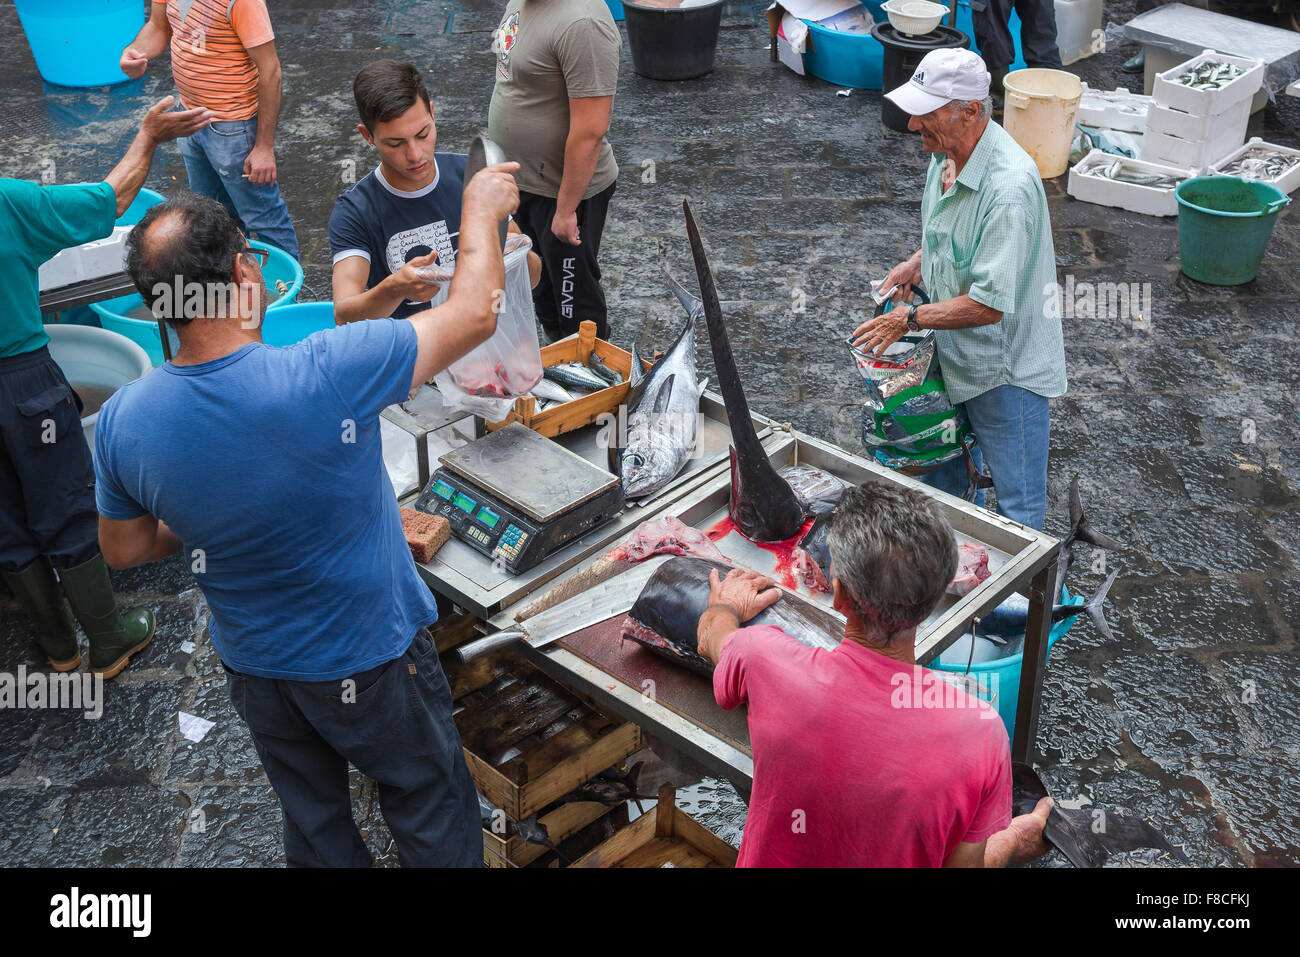 Catania fish market, view of a man buying swordfish on a busy morning in Catania's famous fish market (Mercato - Stock Image